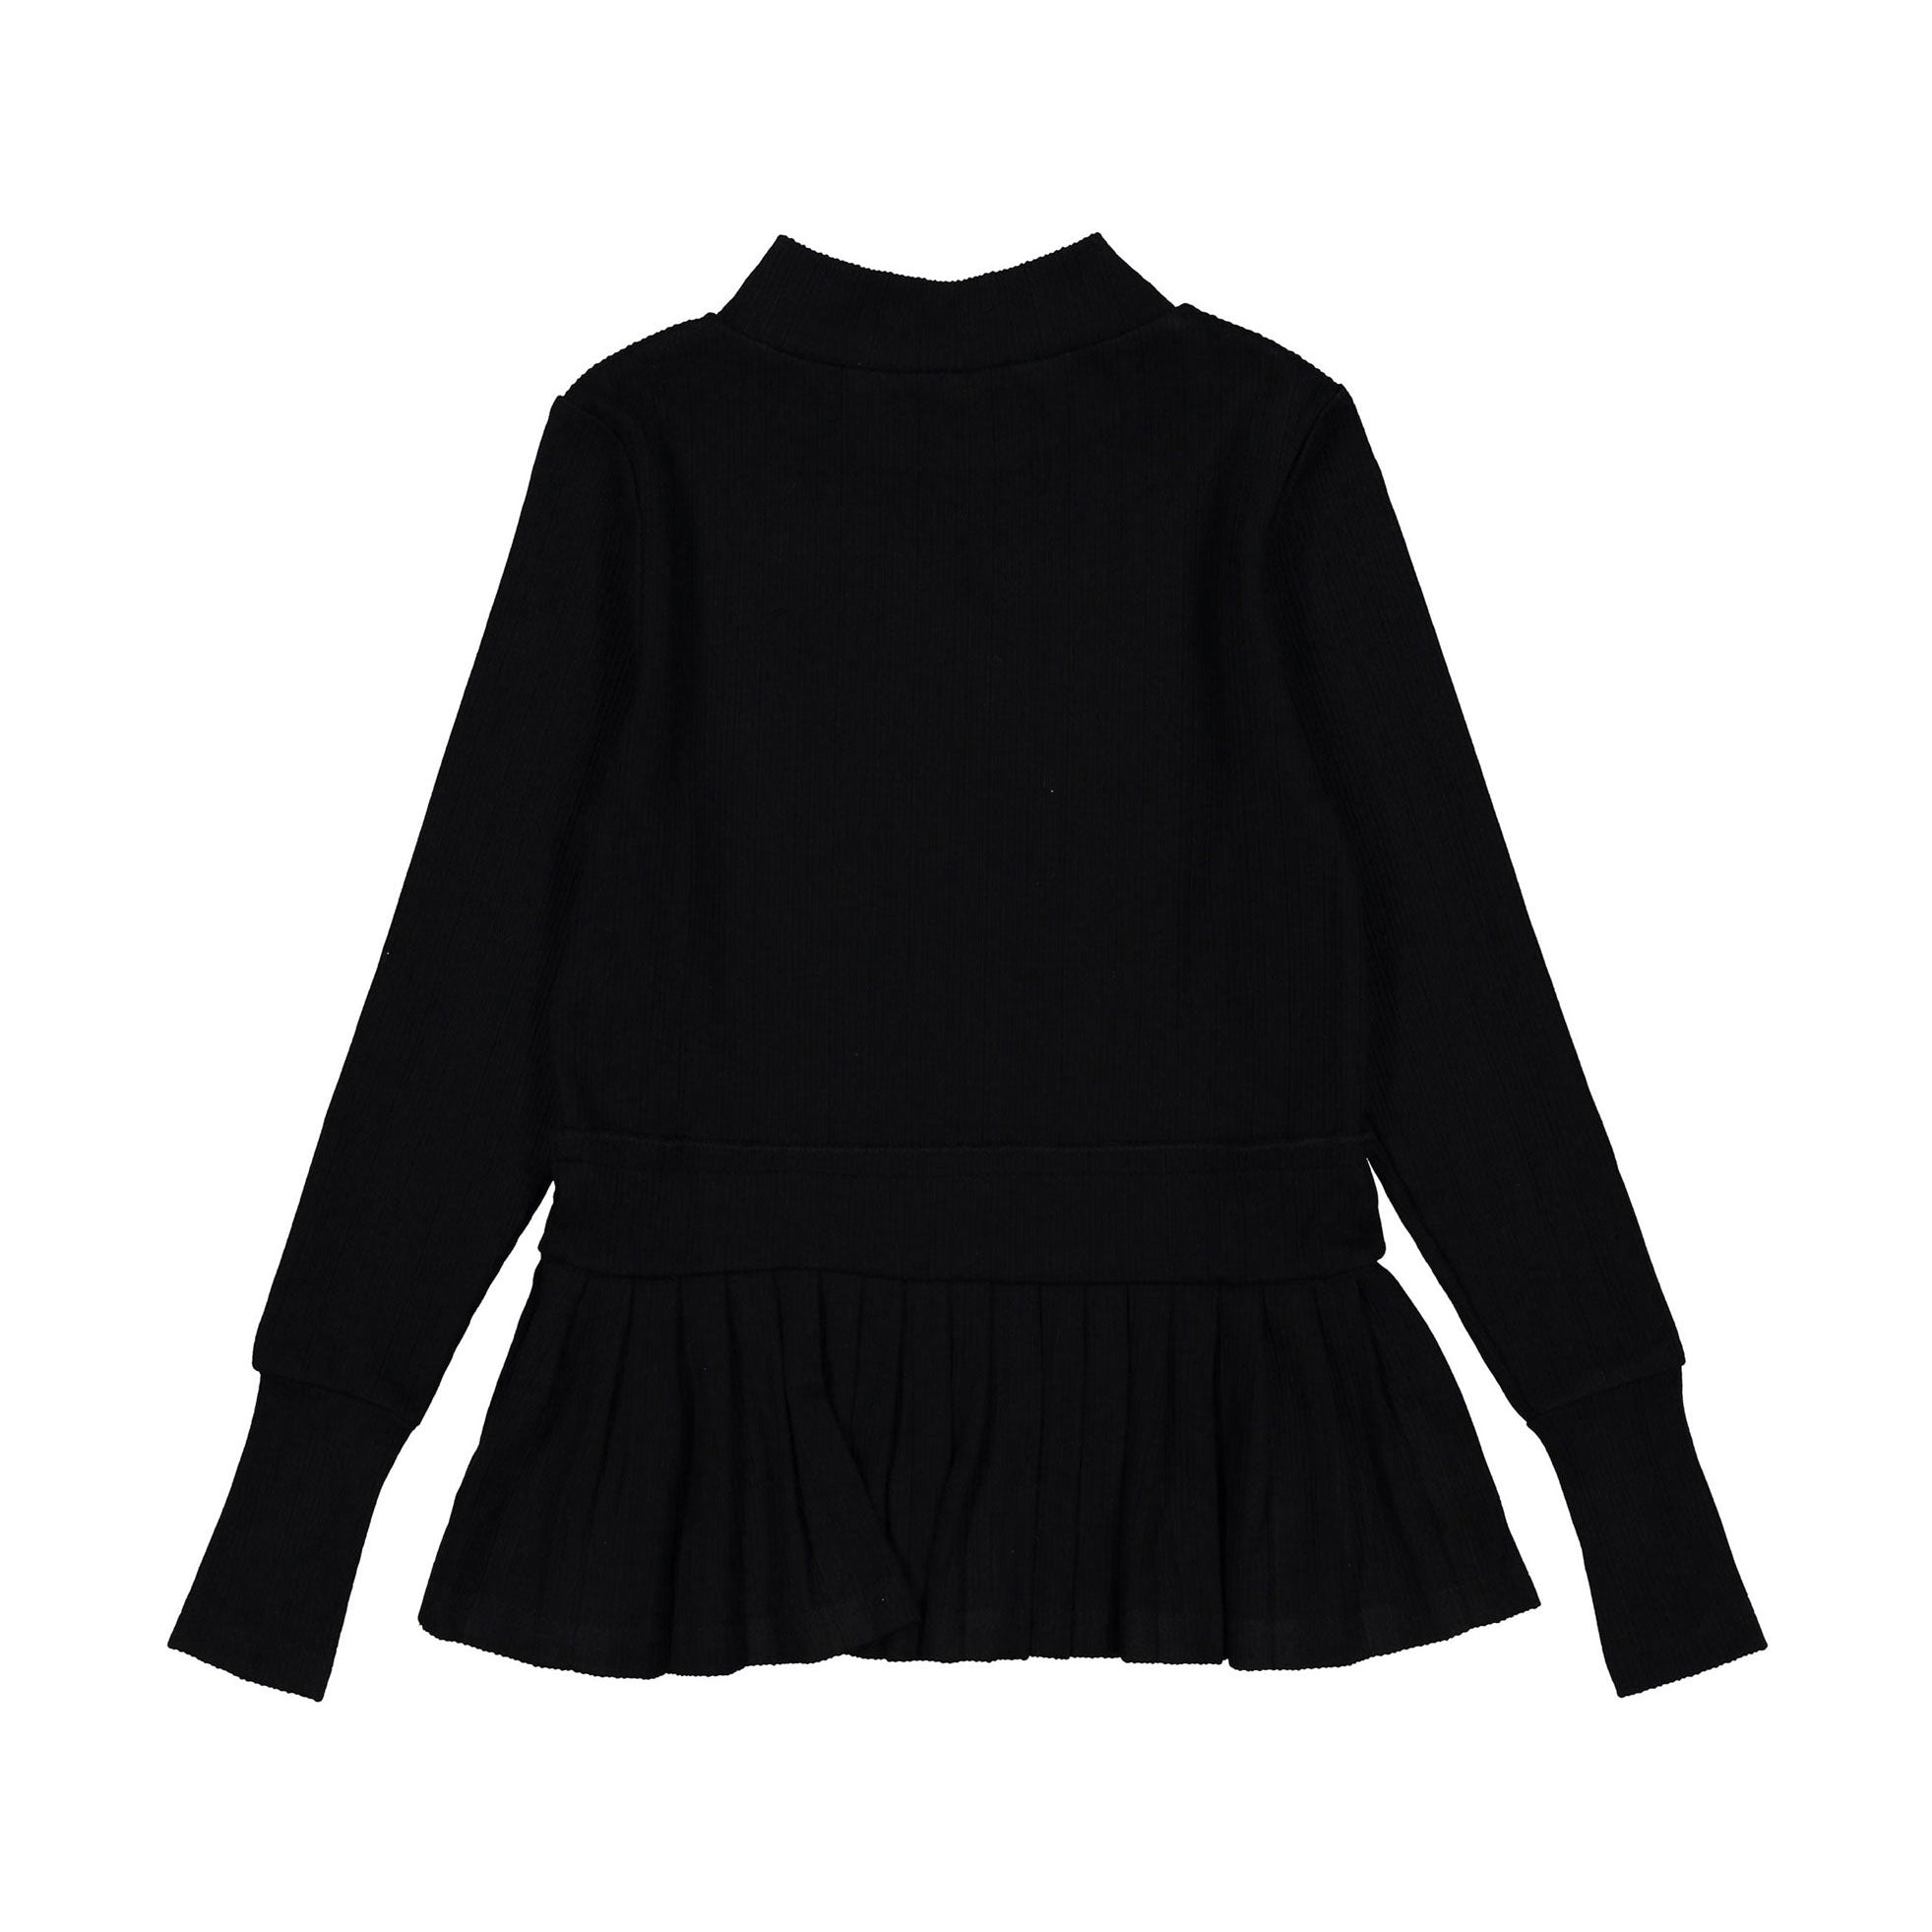 Ava and Lu Black Pleated Turtleneck Sweater